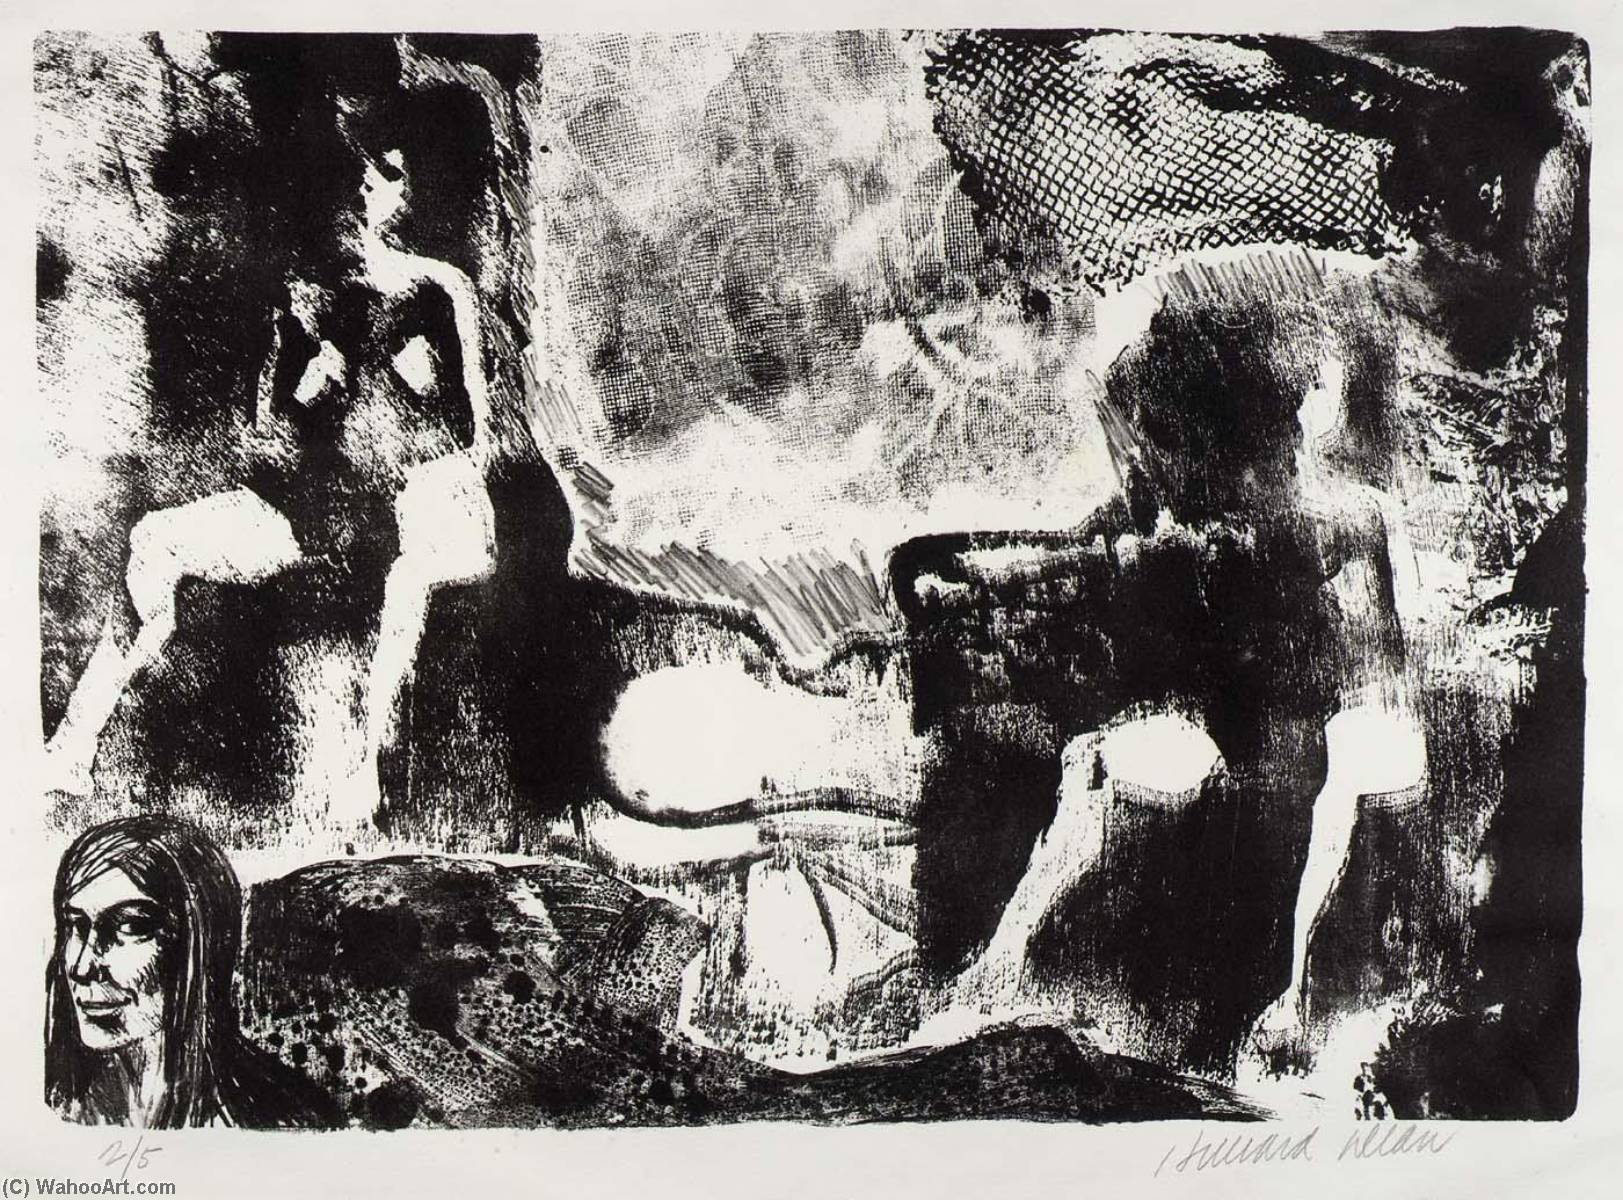 Untitled ( B), Lithography by Hilliard Dean